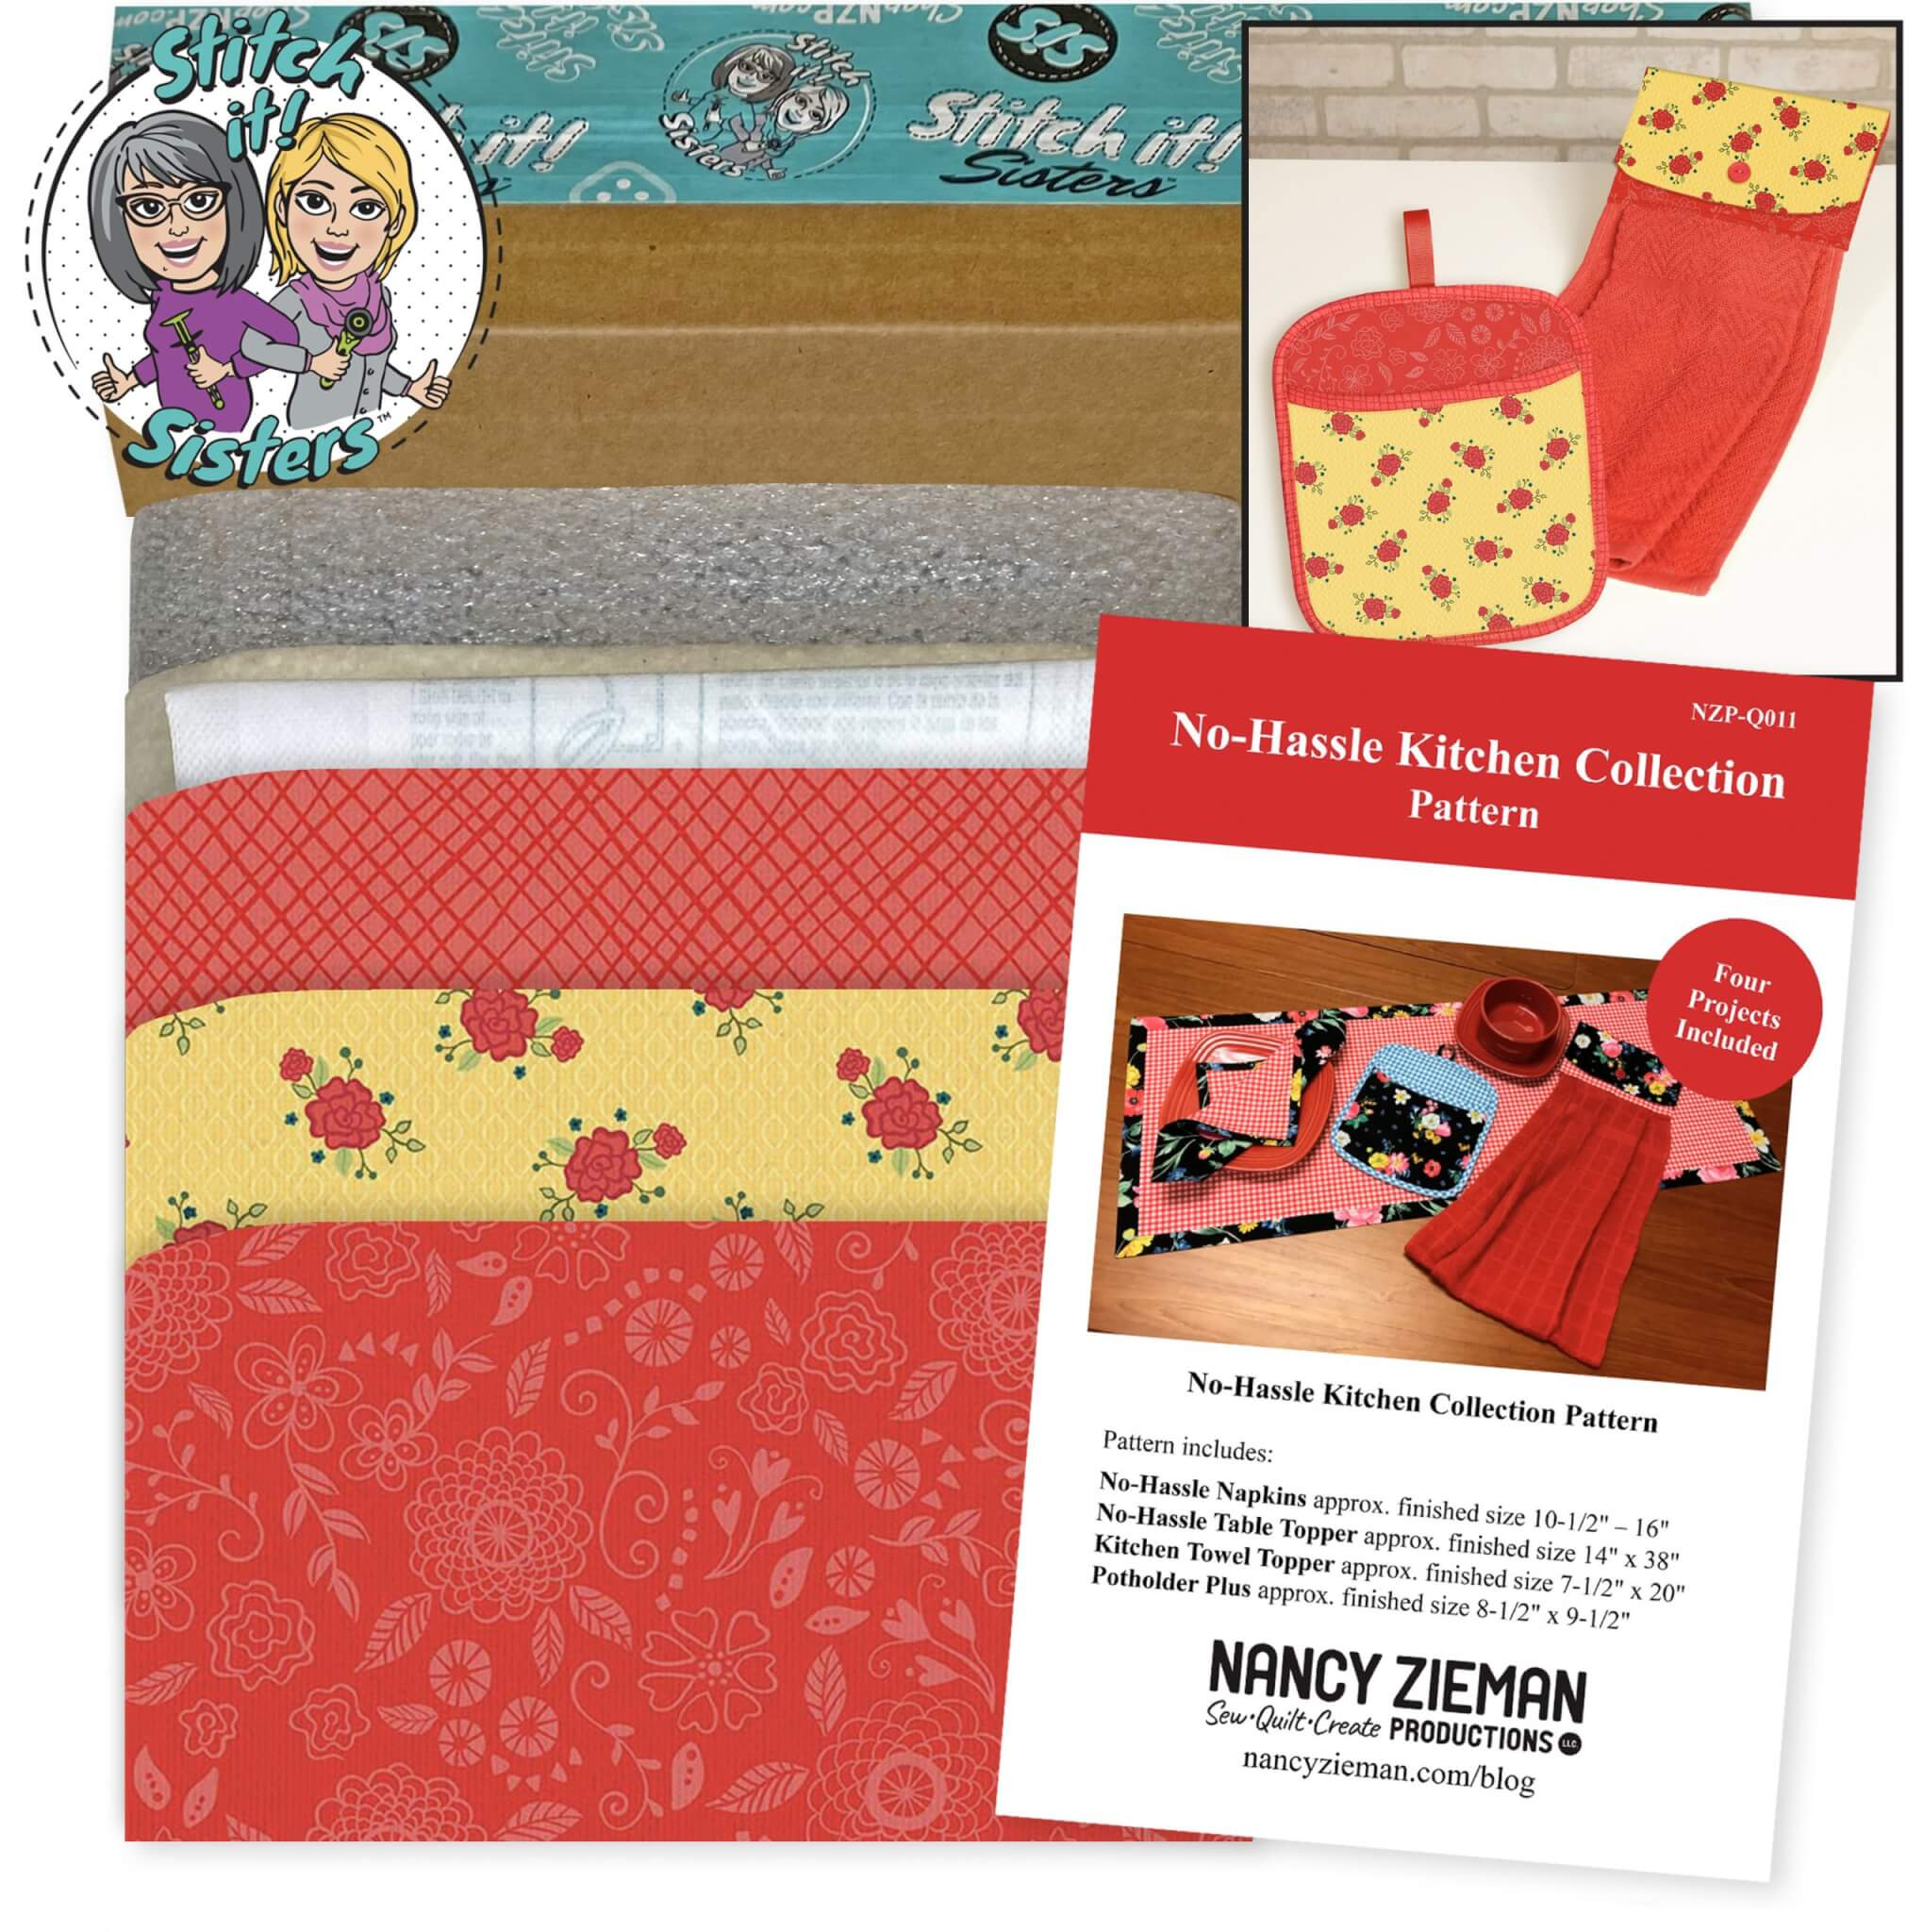 Red and Yellow Wildflower Boutique Potholder Plus and Towel Topper Bundle Box available at Nancy Zieman Productions at ShopNZP.com